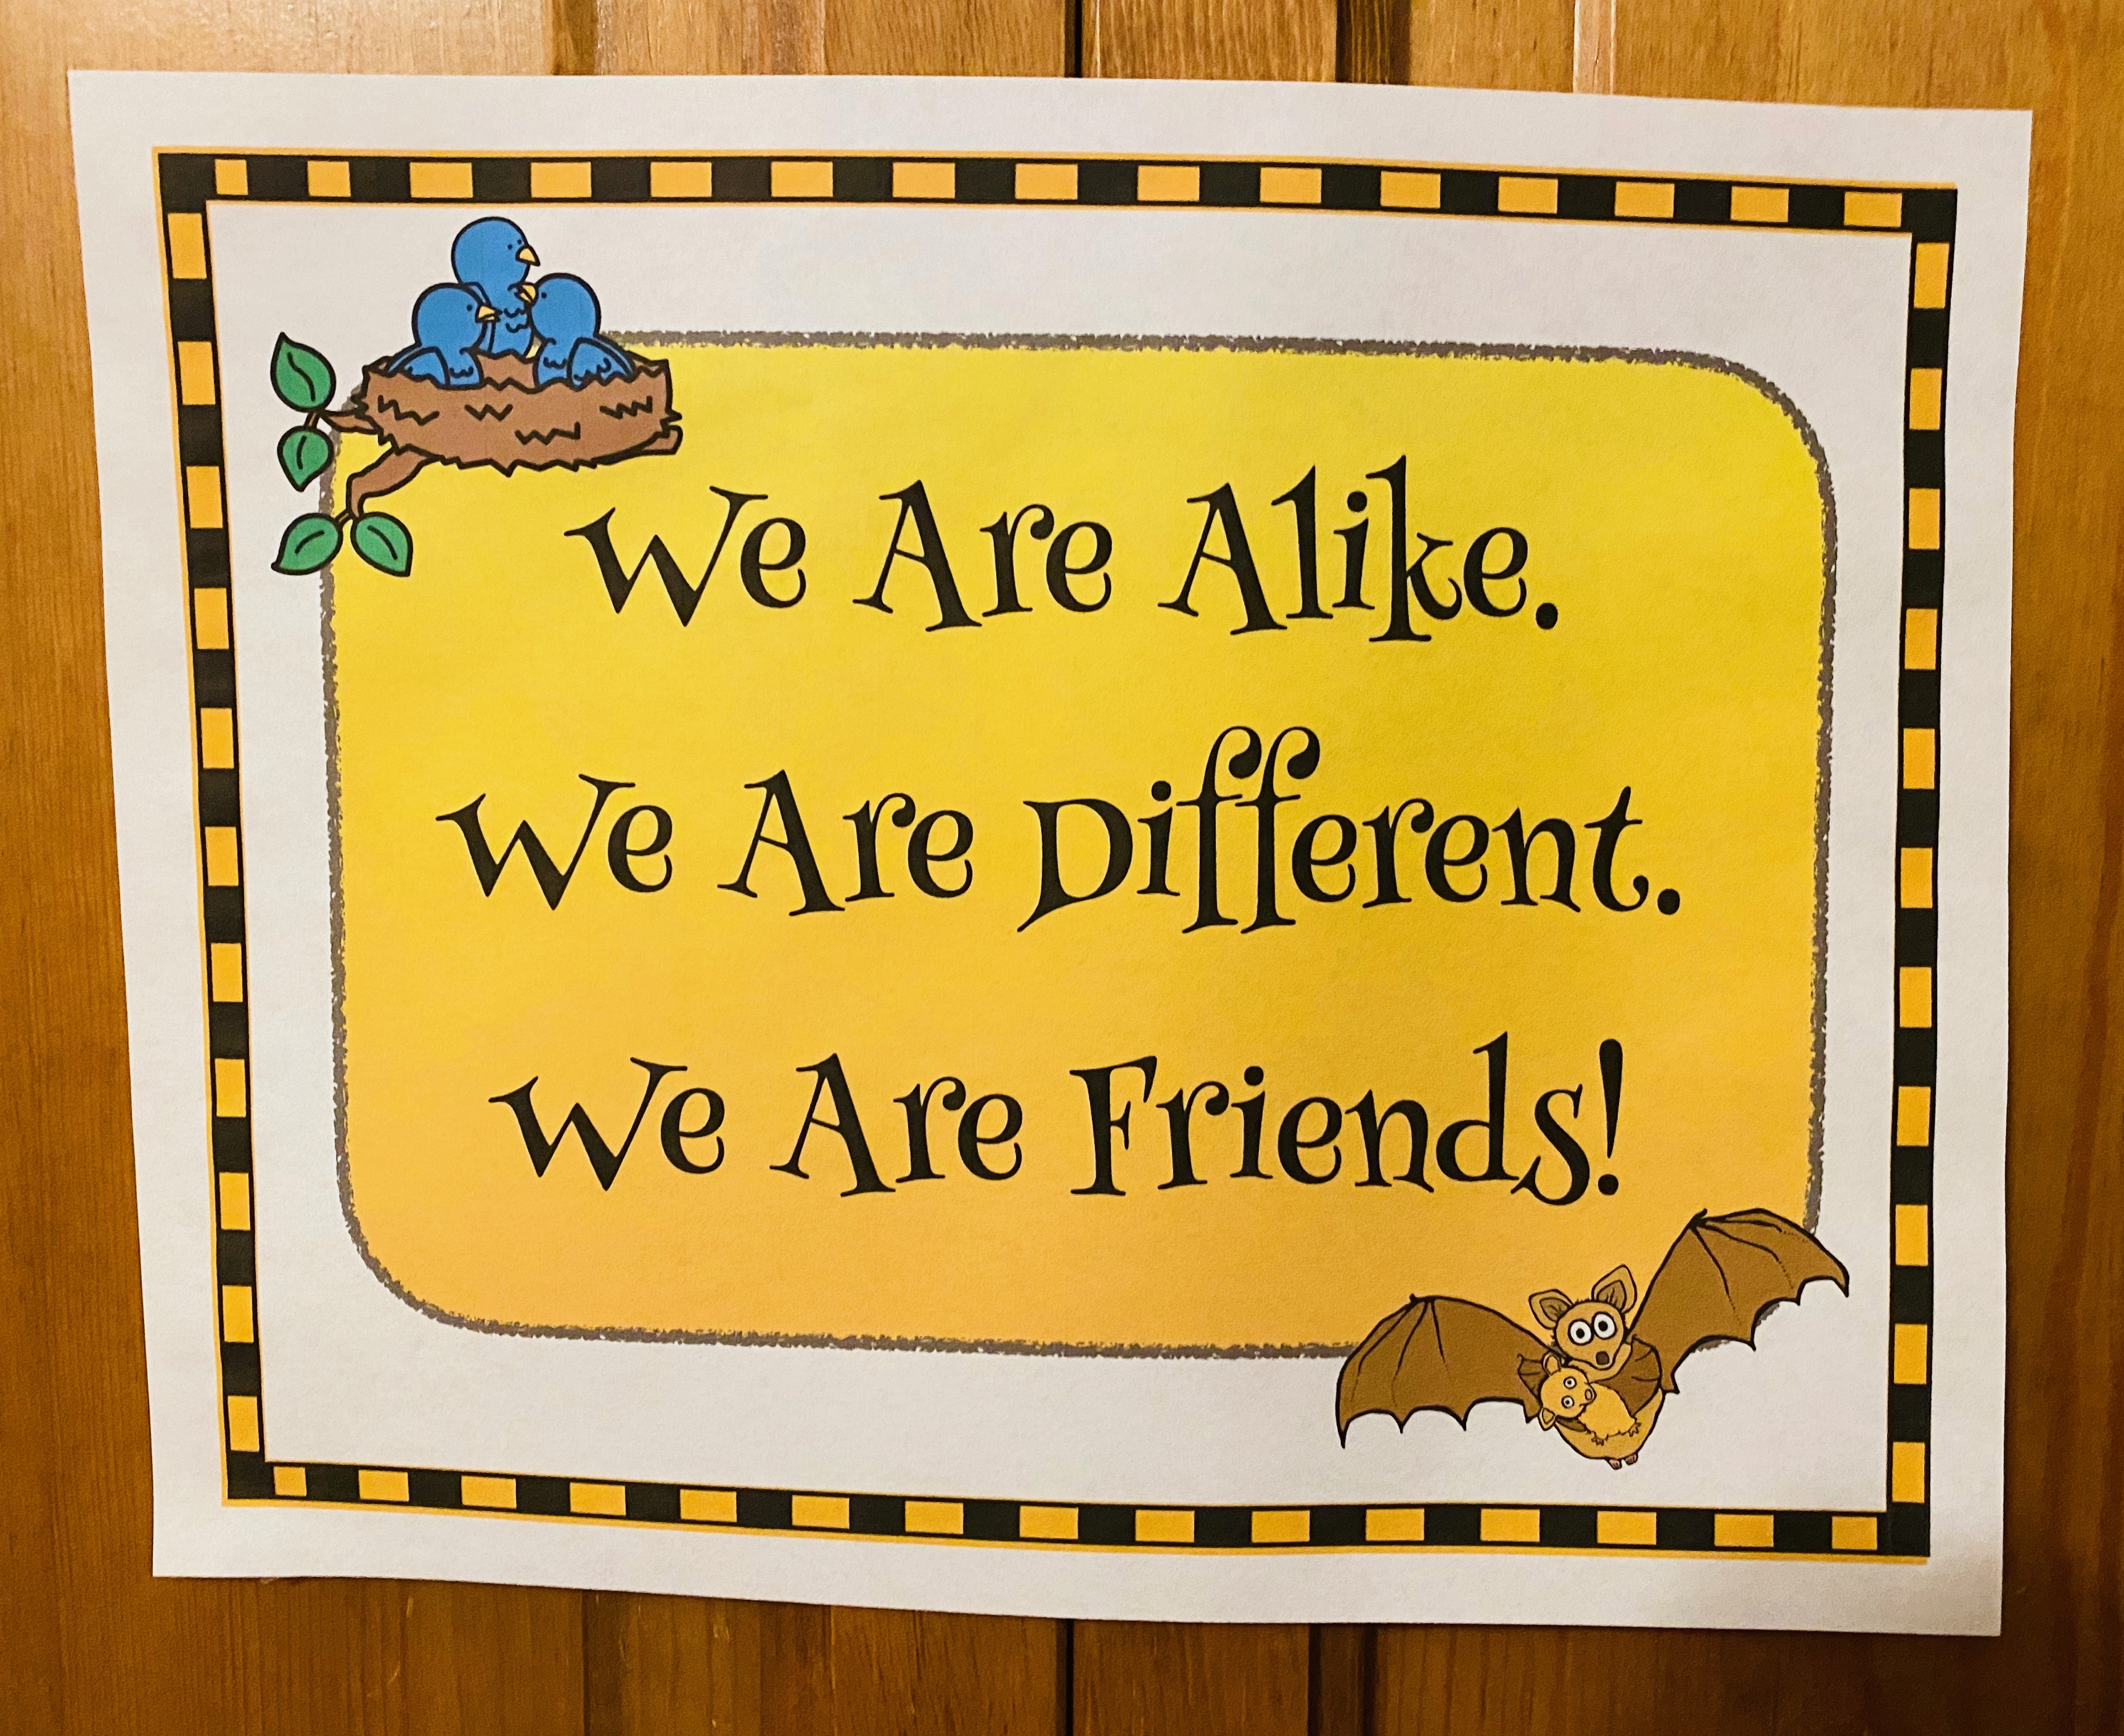 We are friends poster, venn friend bats, Stellaluna activities, bat craft, venn diagram, comparison & contrast writing, comparison & contrast posters, comparing Stellaluna with The Ugly Duckling